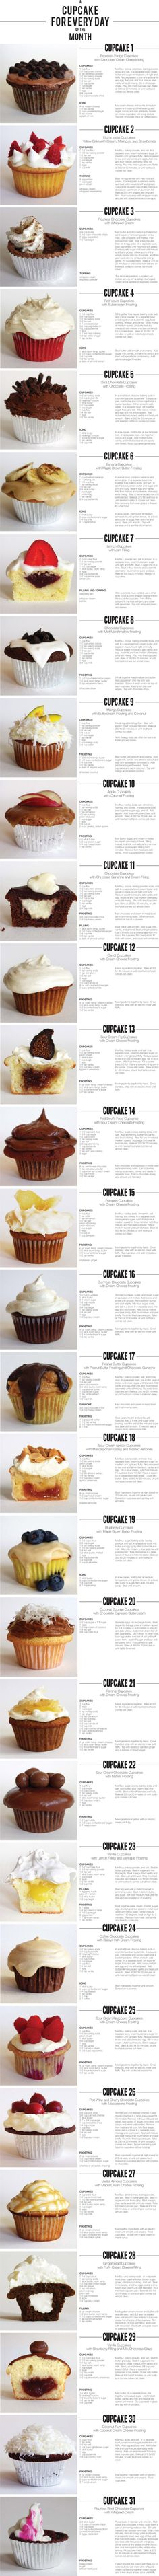 A recipe and a cupcake a day!....A cupcake a day keeps the doctors away, hmmmm I dont think so, but cupcakes really are awesome.